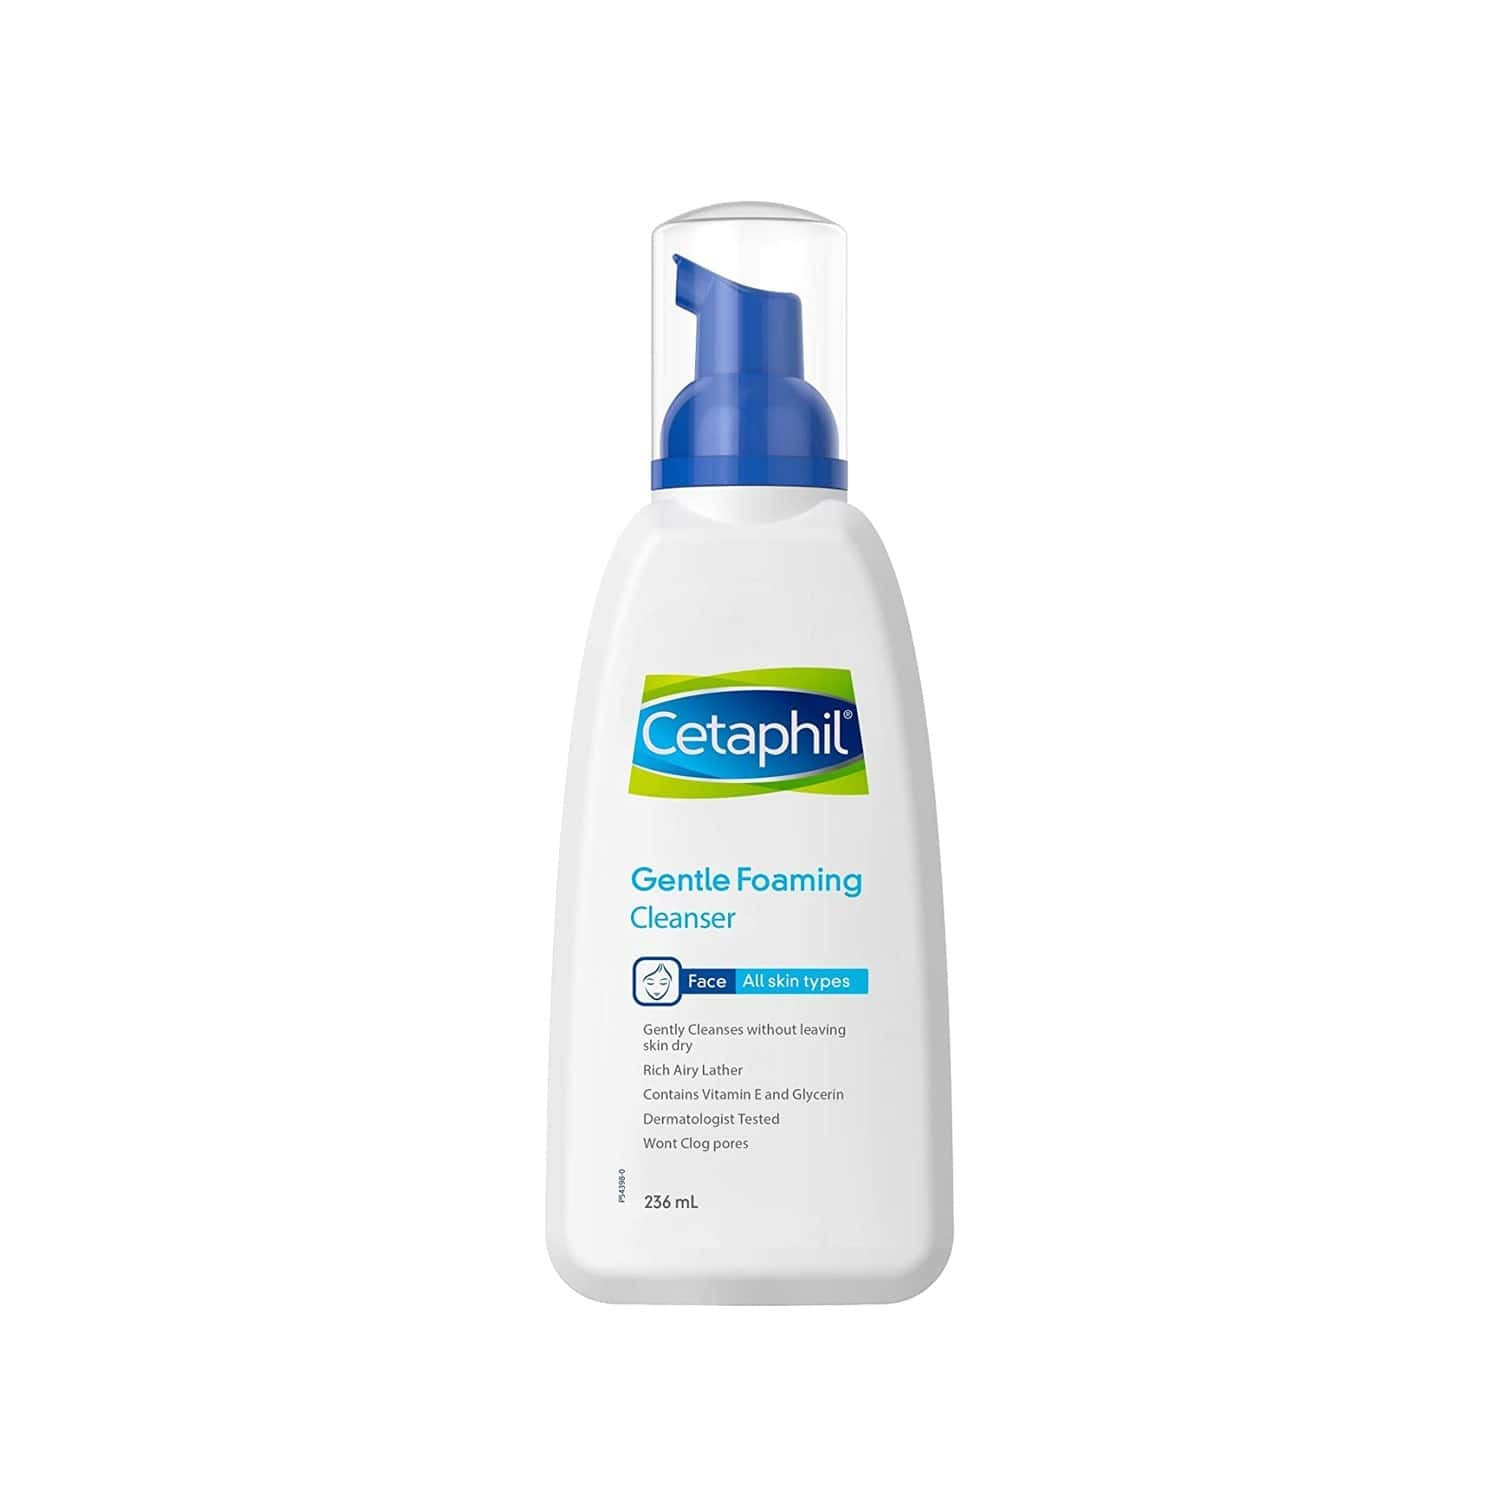 Cetaphil Gentle Foaming Cleanser - 236ml